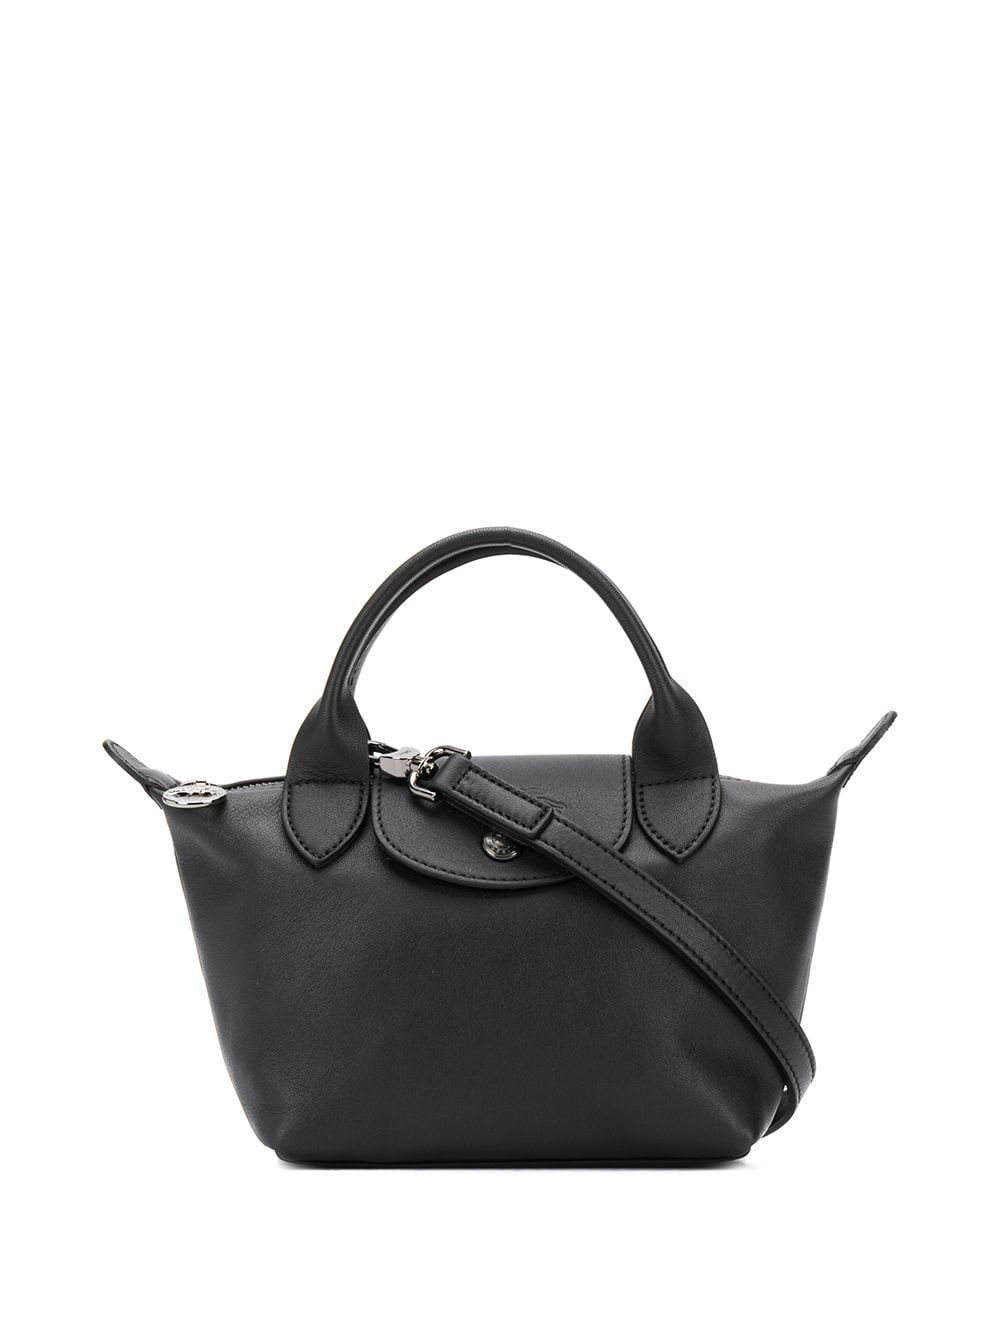 Longchamp Le Pliage Cuir Mini Tasche Longchamp Bags In 2020 Mini Bag Bags Longchamp Le Pliage